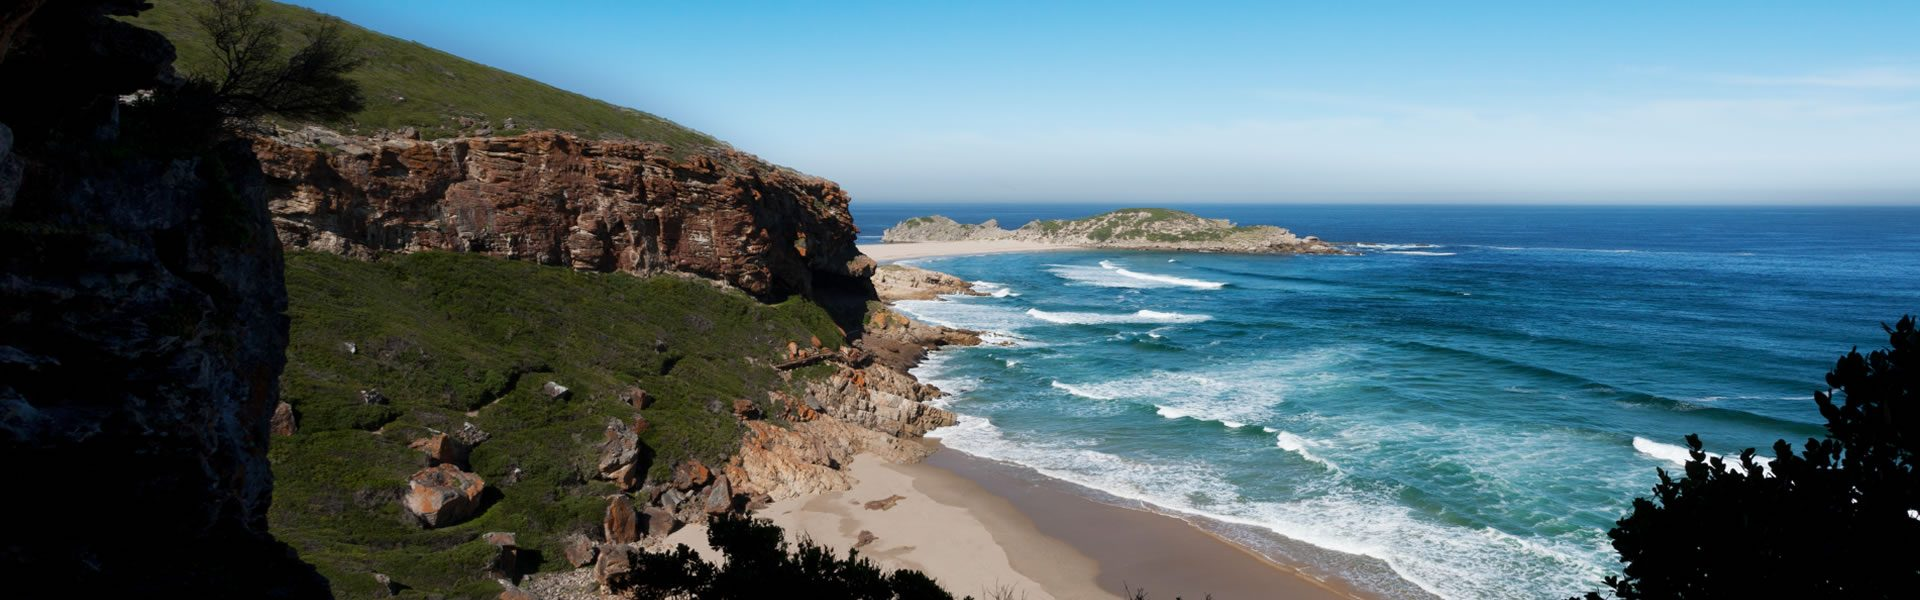 Robberg caves and archaeological sites, places of interest